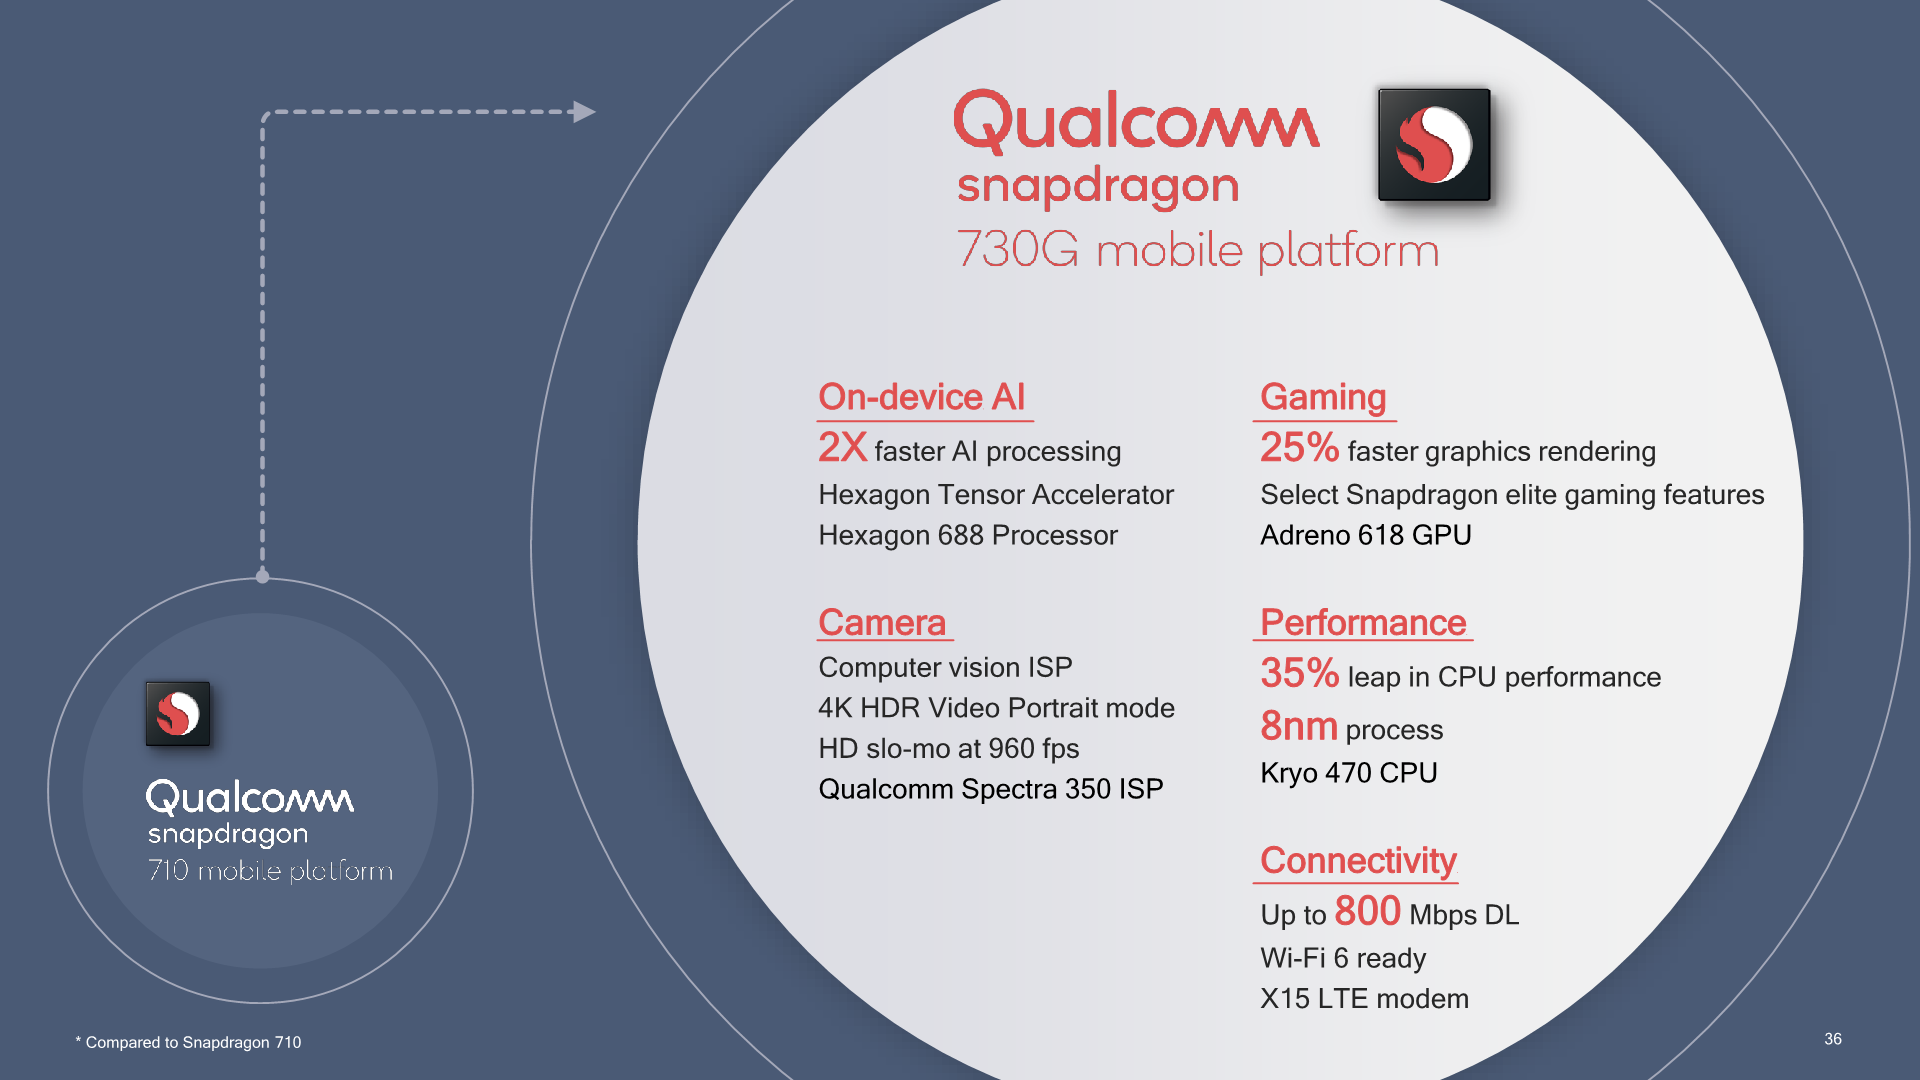 Qualcomm's new mid-range Snapdragon 730G targets mobile gamers